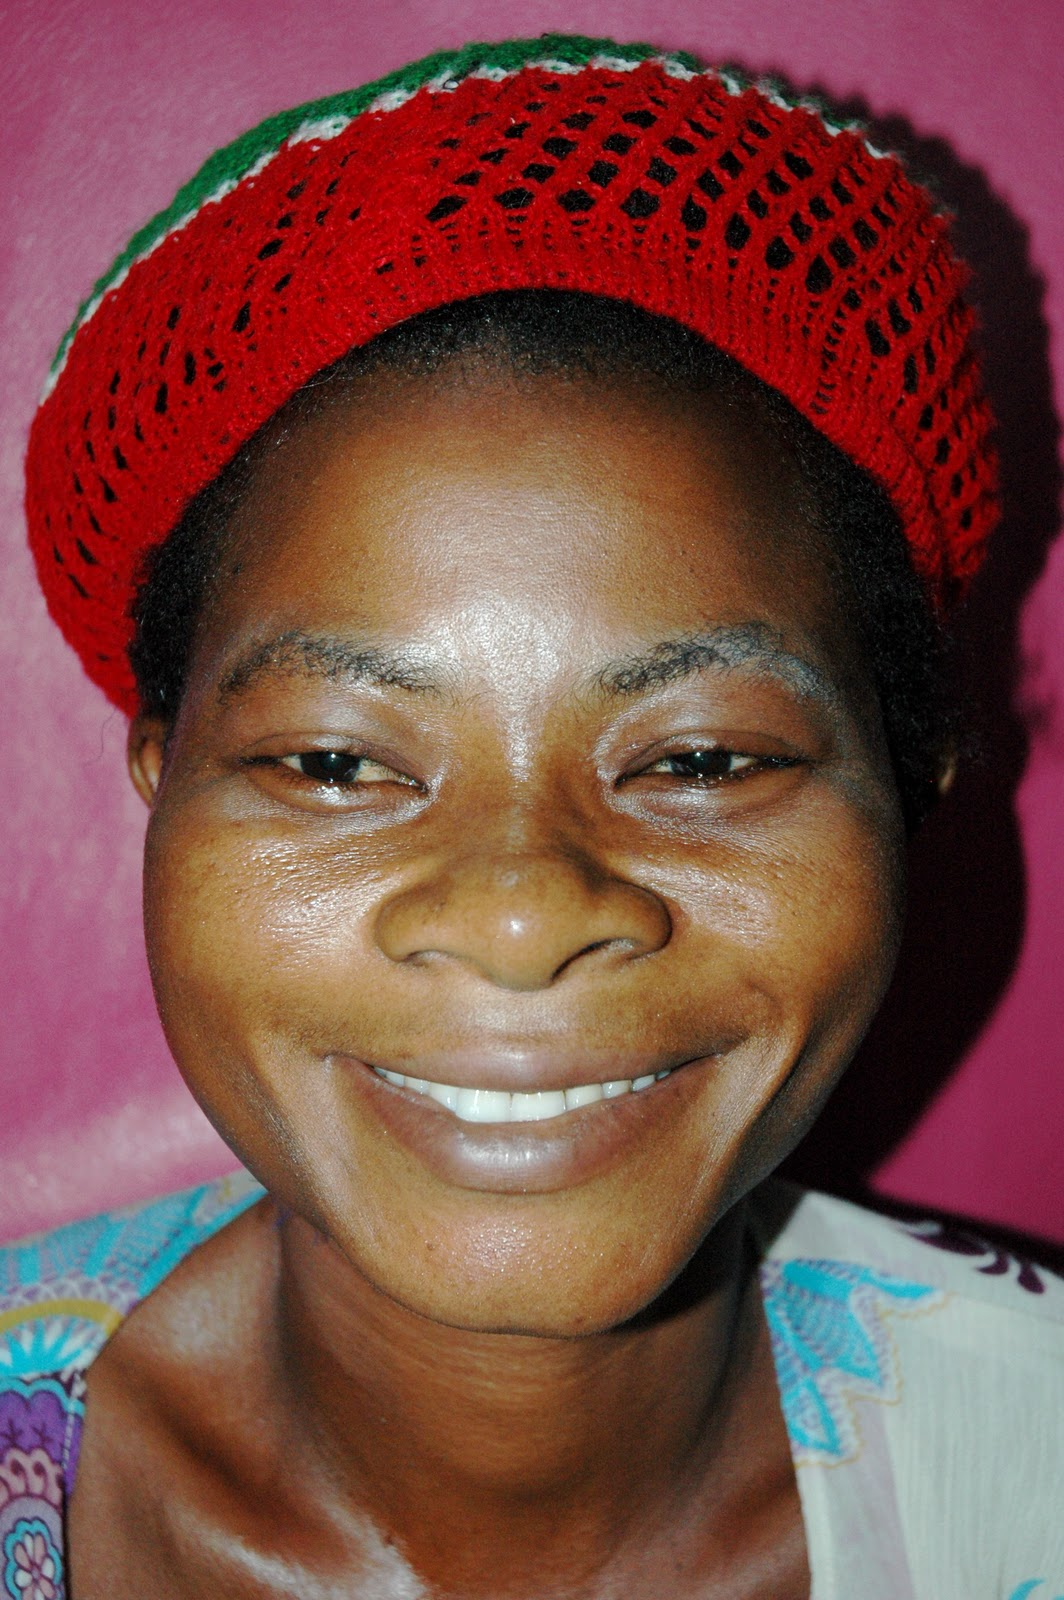 Gallery images and information: Adenoid Face Syndrome